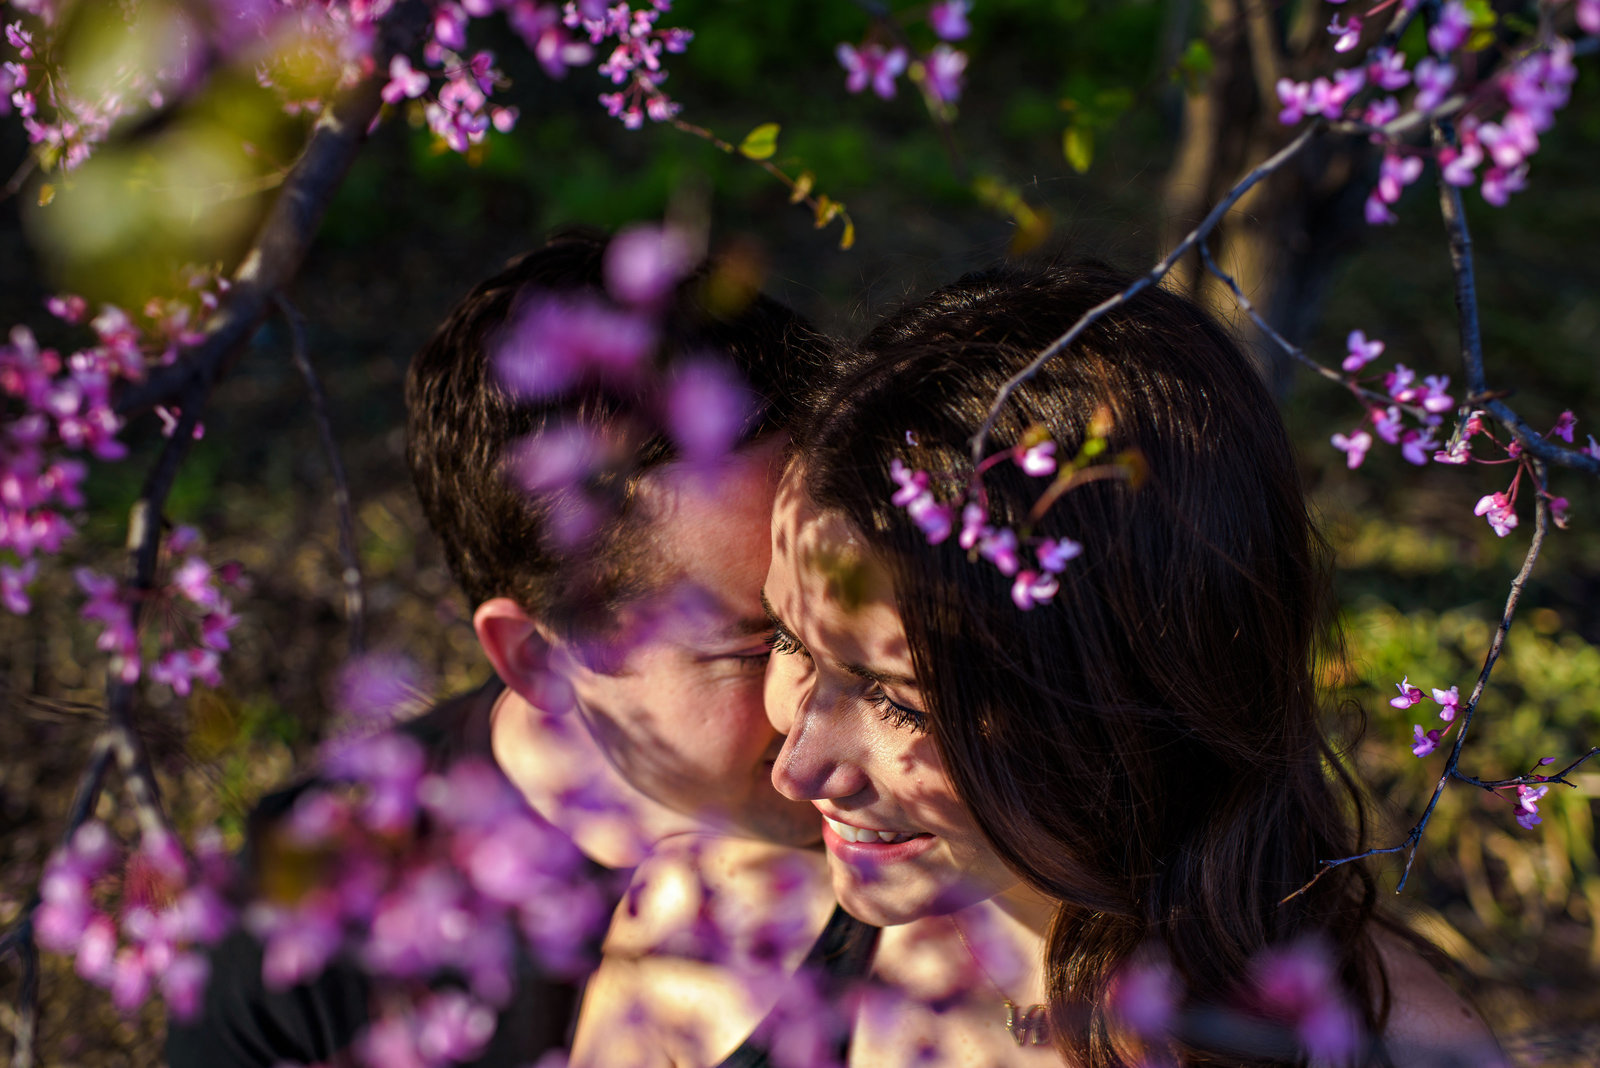 Flowers cast shadows on a couples faces.